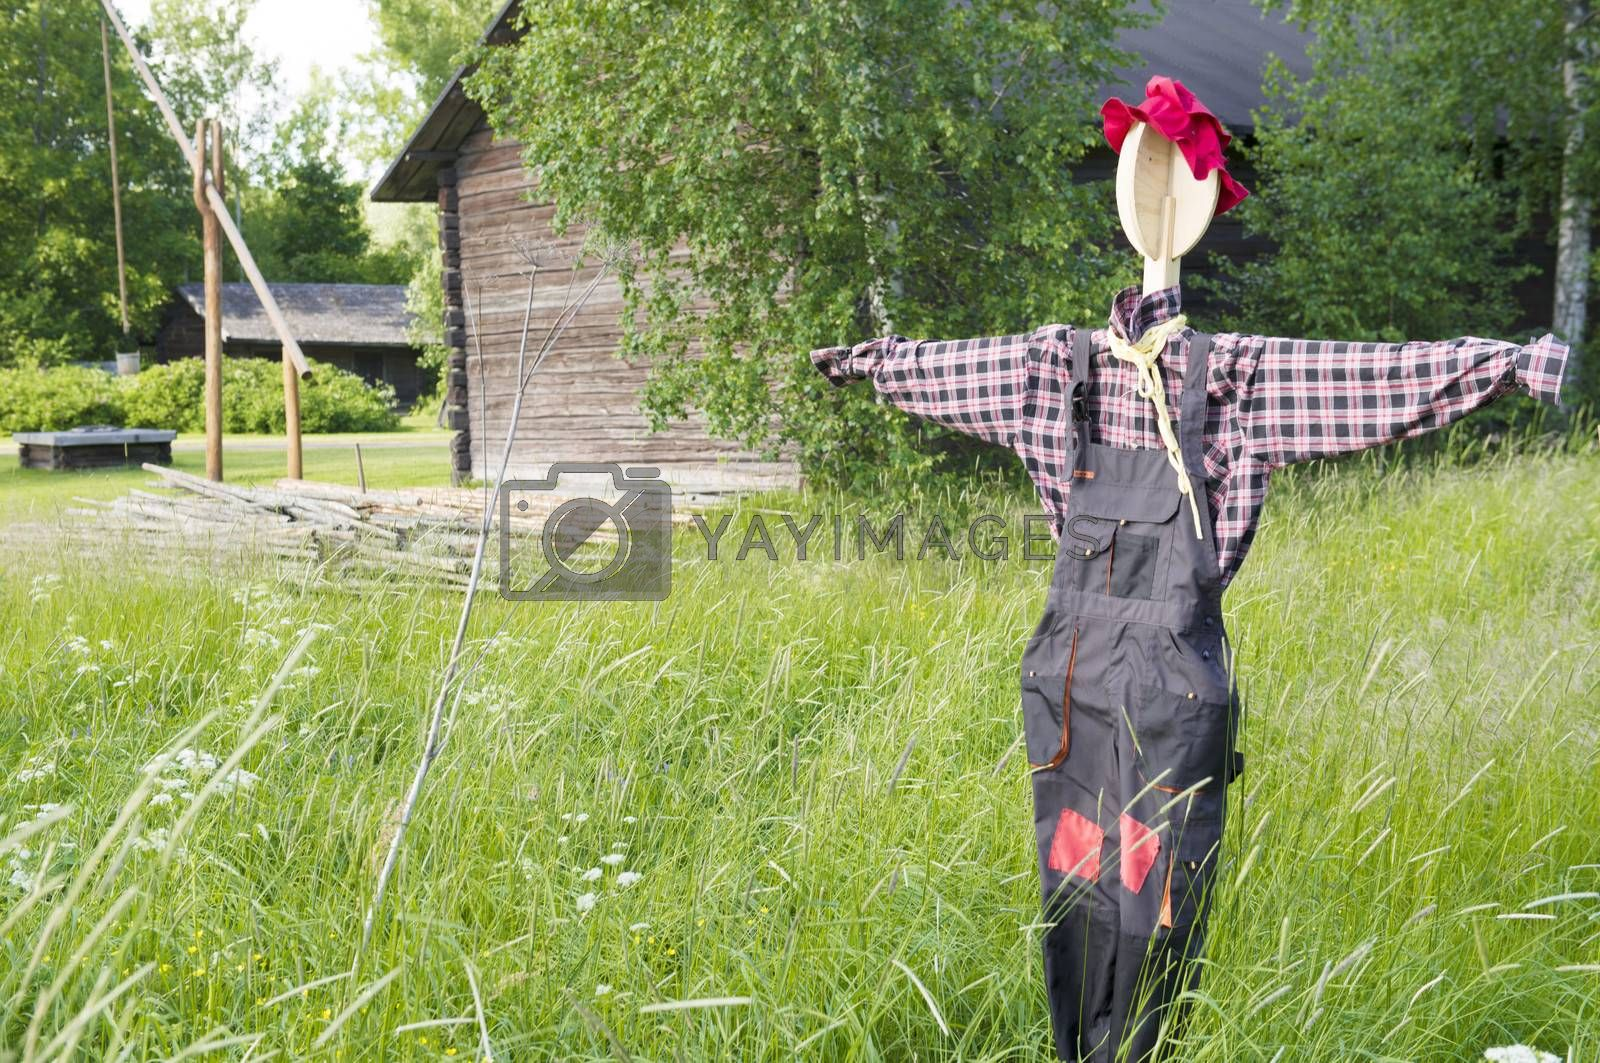 Scarecrow.  Taken in Elimaki village country museum in Finland on June 2013